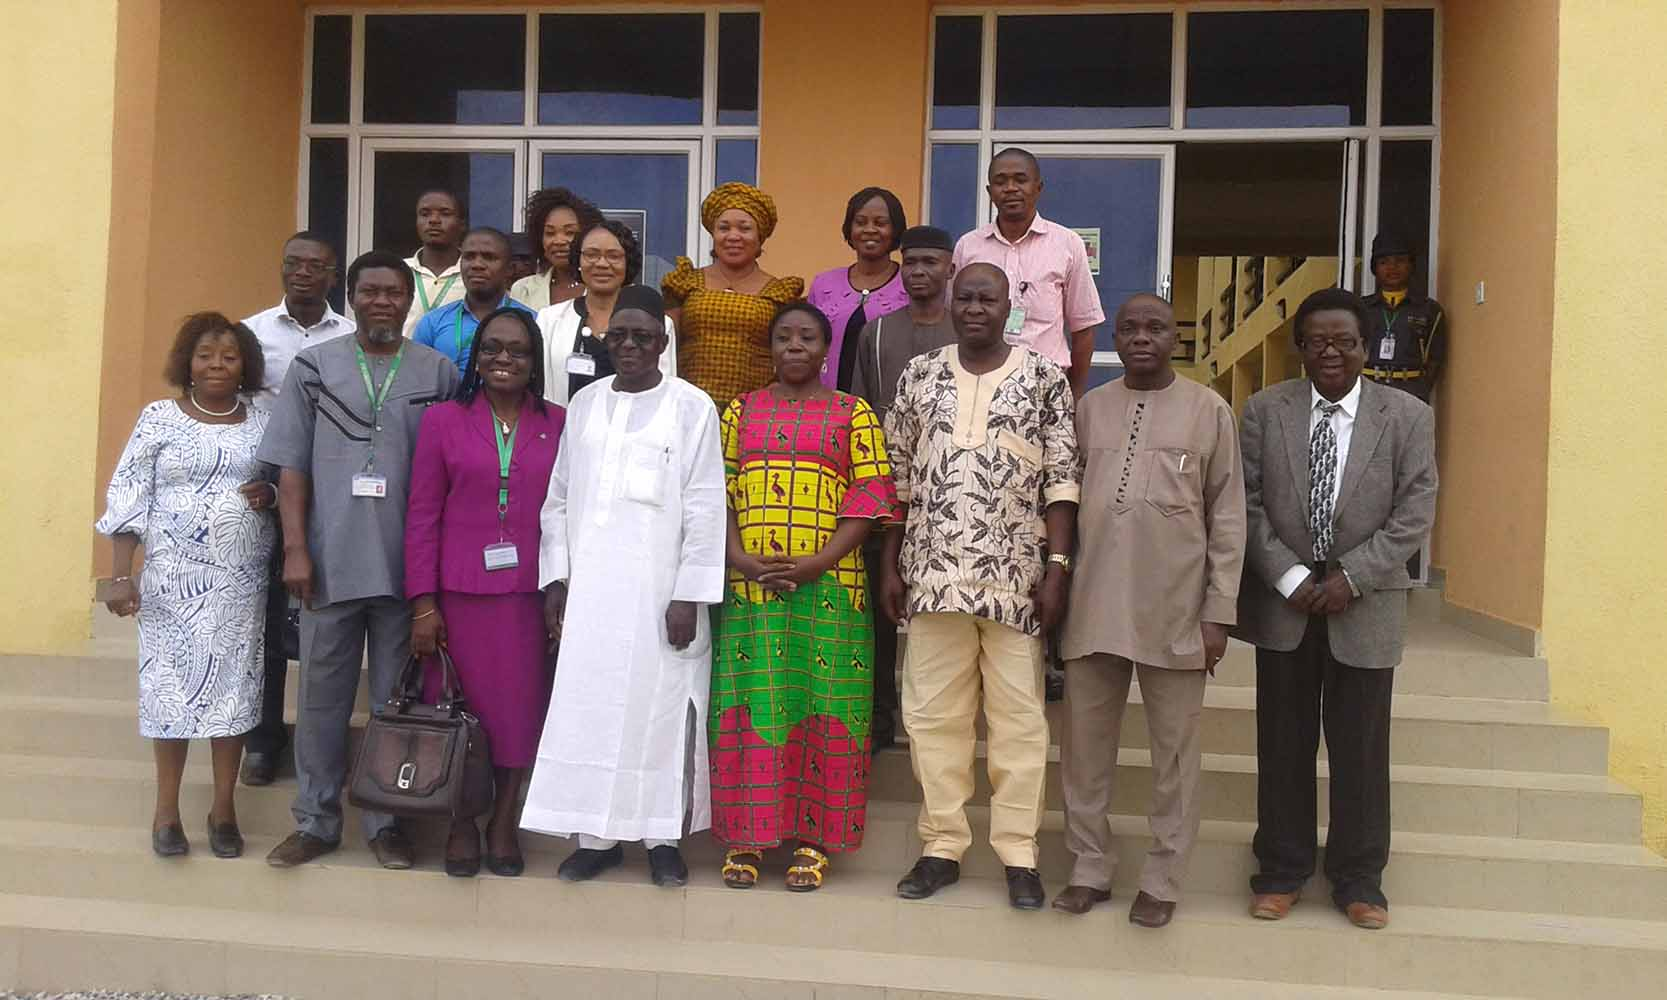 In a pose with colleagues from a Nigerian University